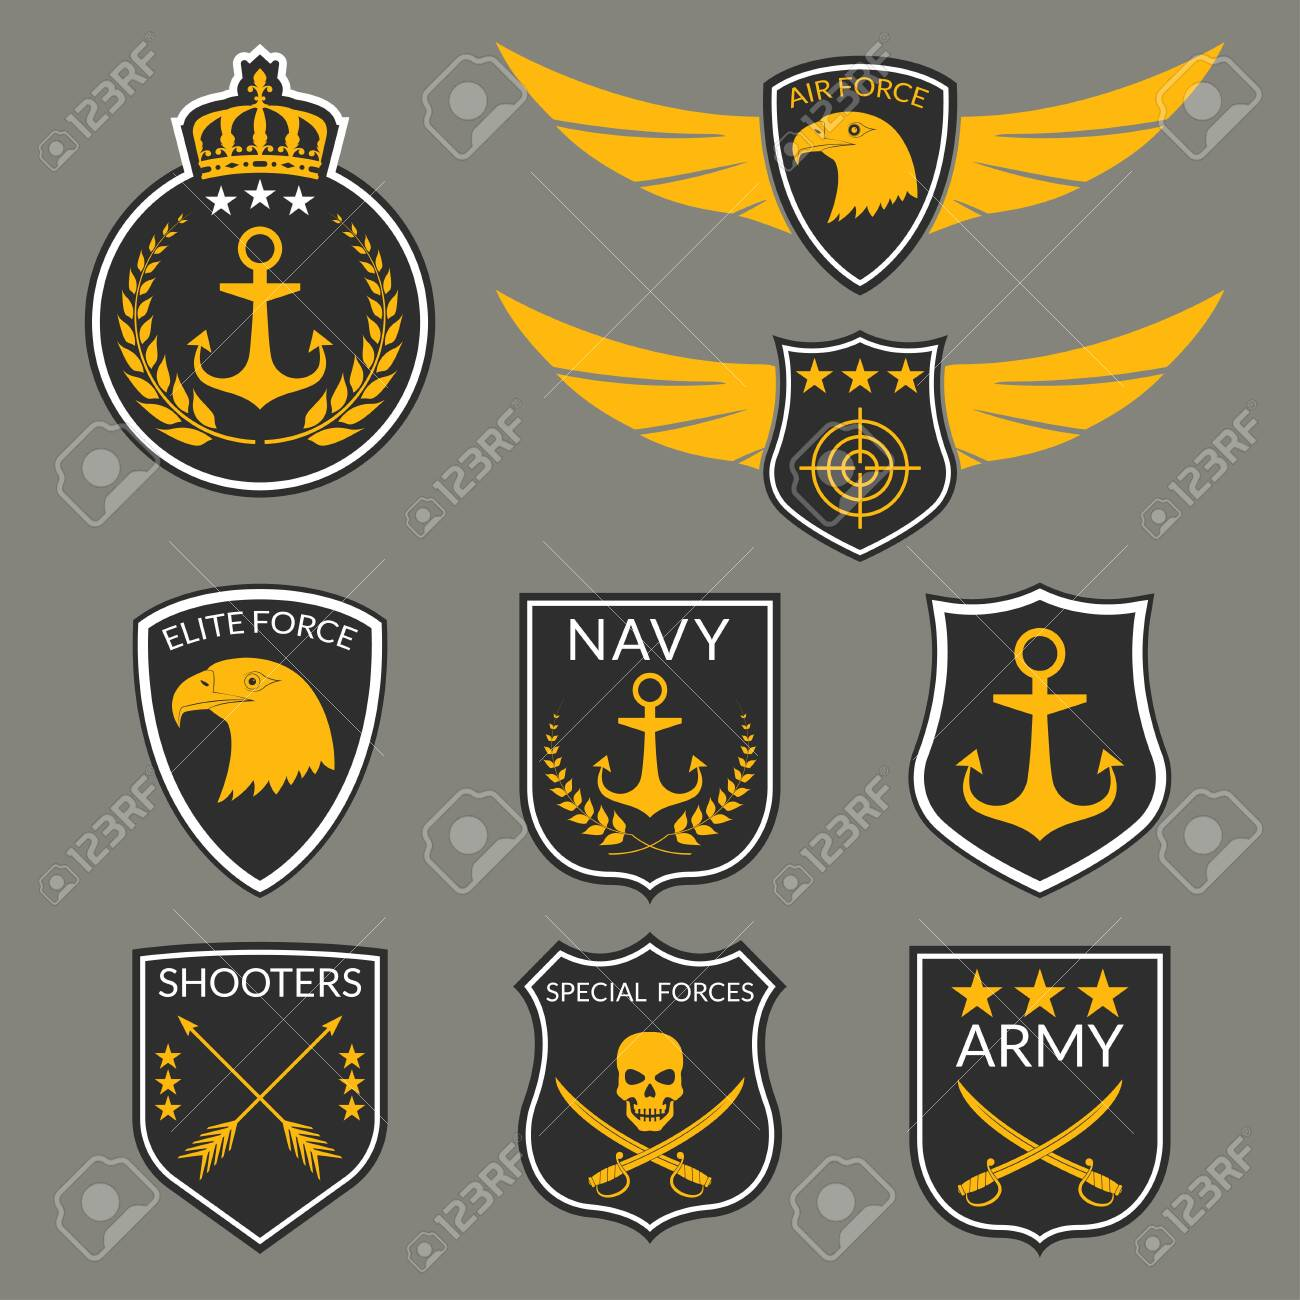 army and military badge and logo set. air force emblem with wings.. royalty  free cliparts, vectors, and stock illustration. image 151809586.  123rf